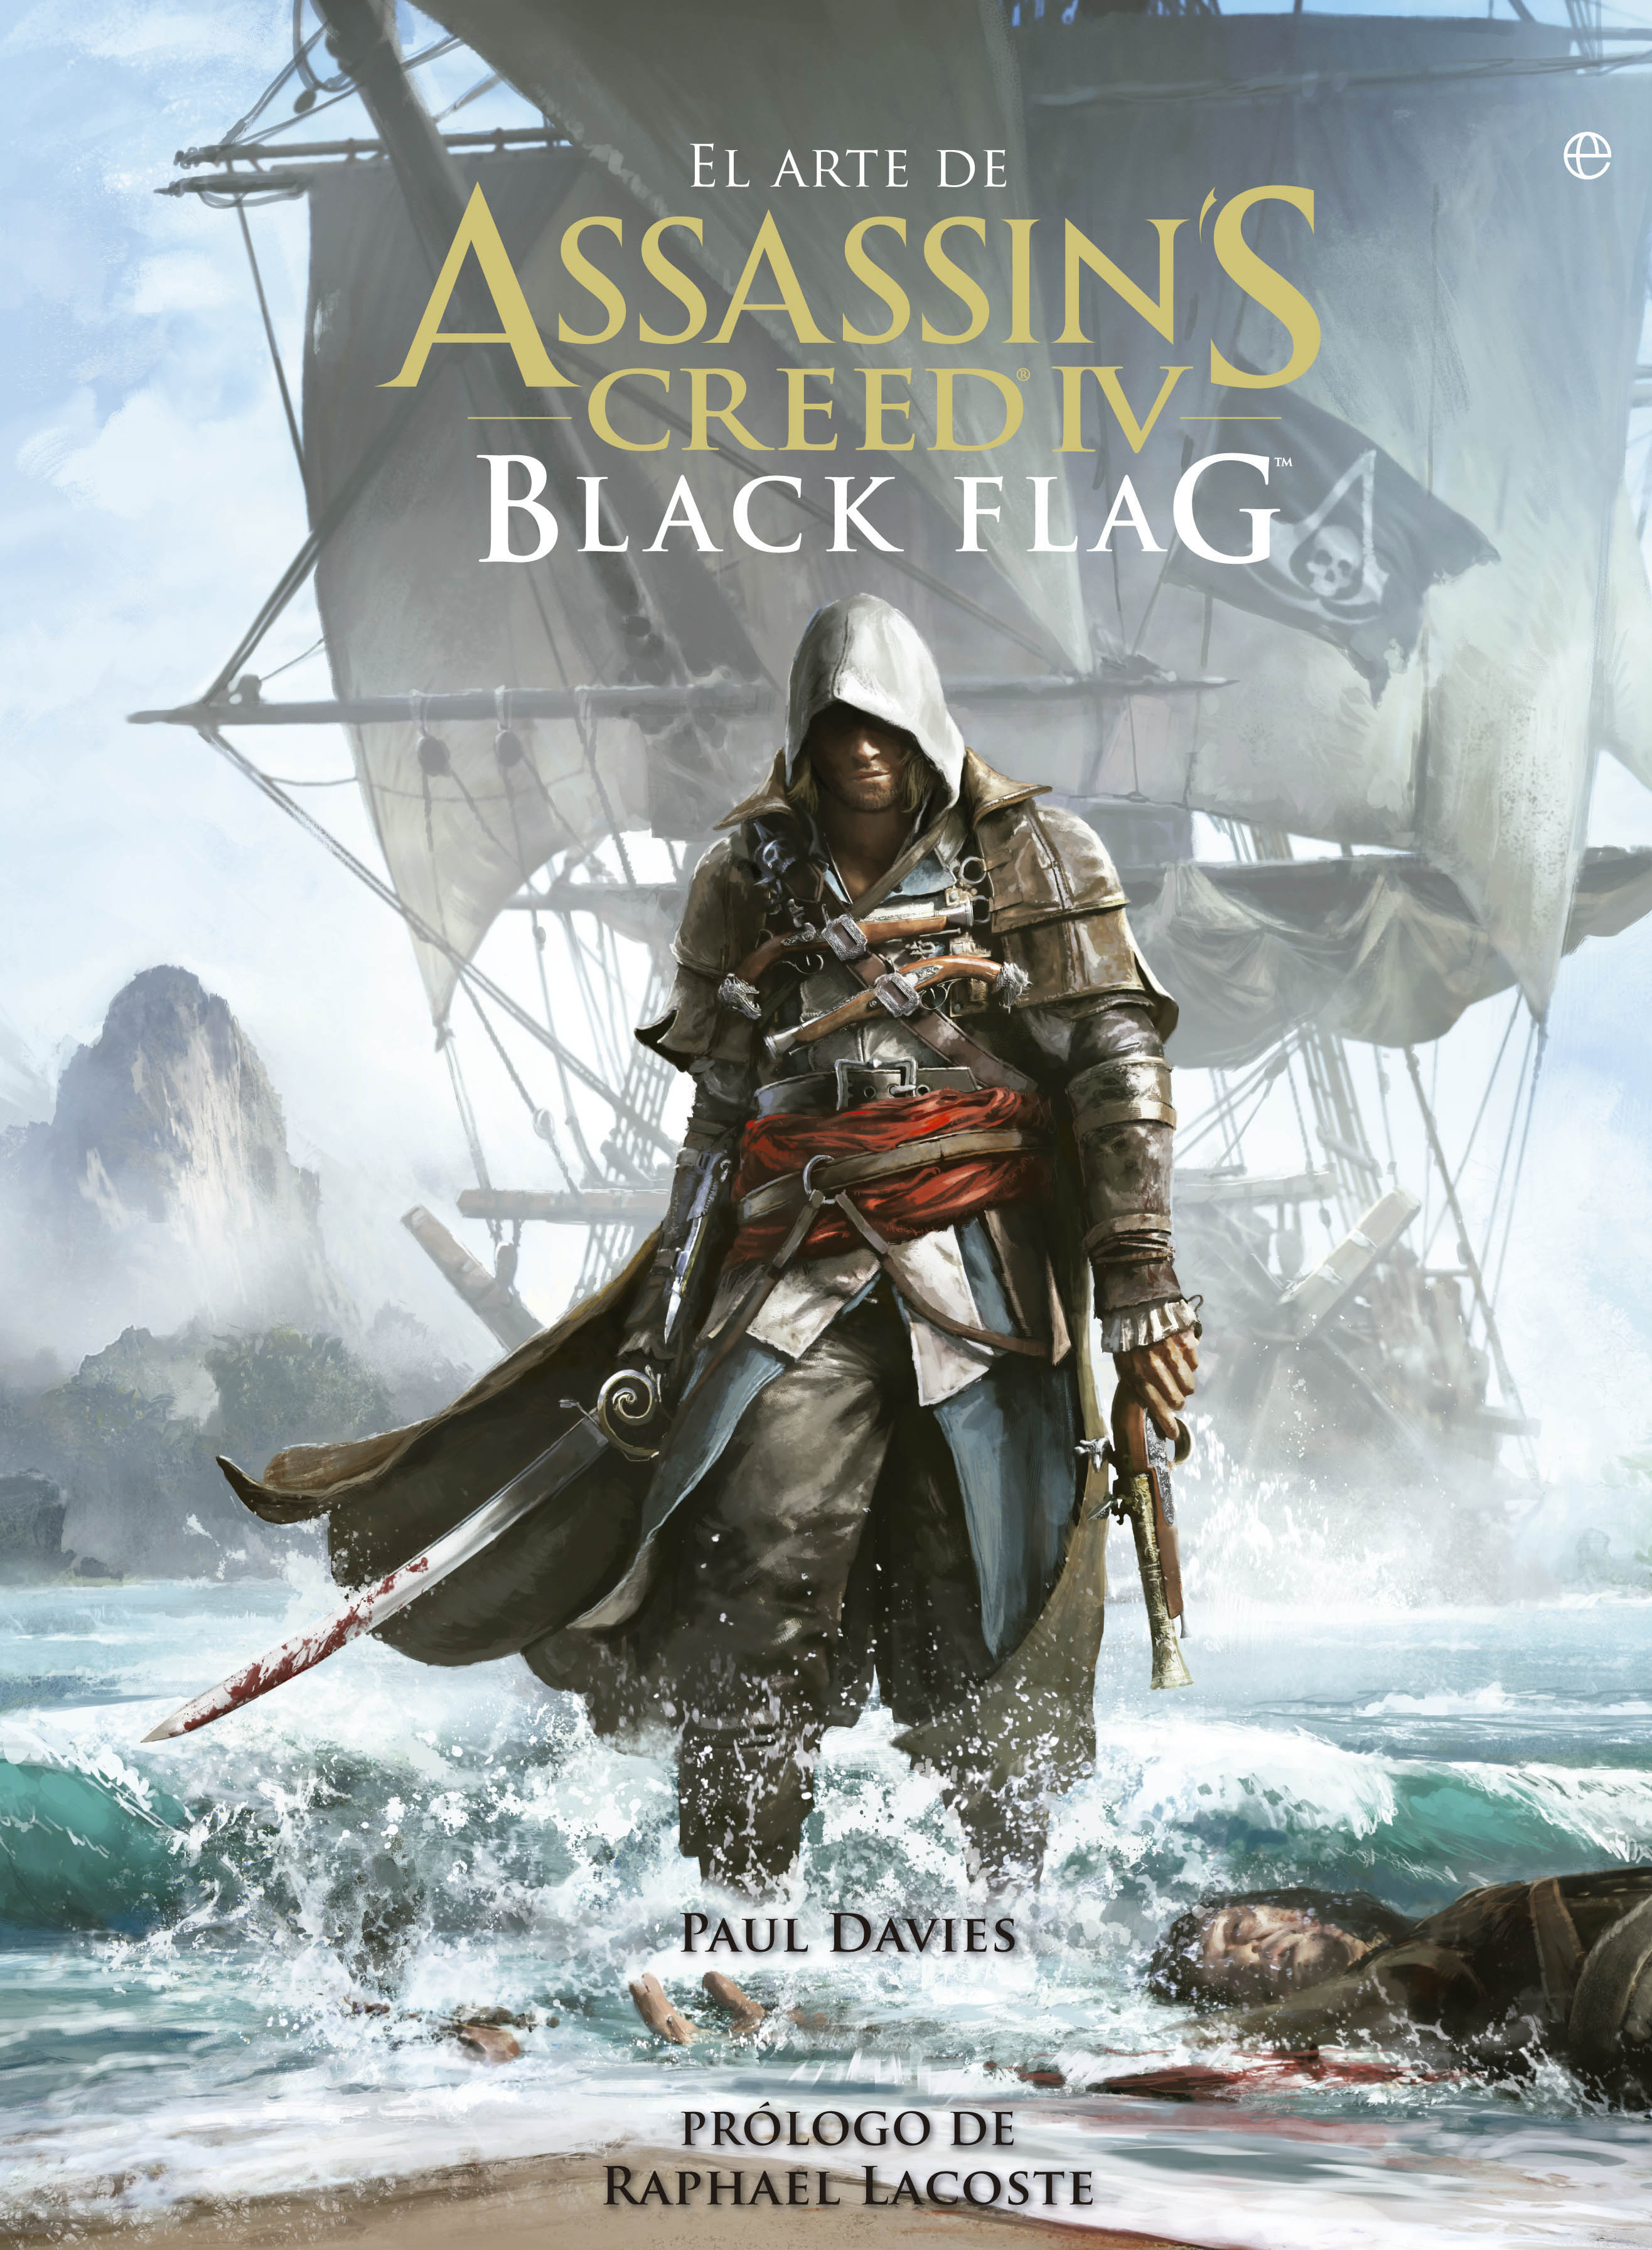 El arte de Assassin's Creed IV: Black Flag